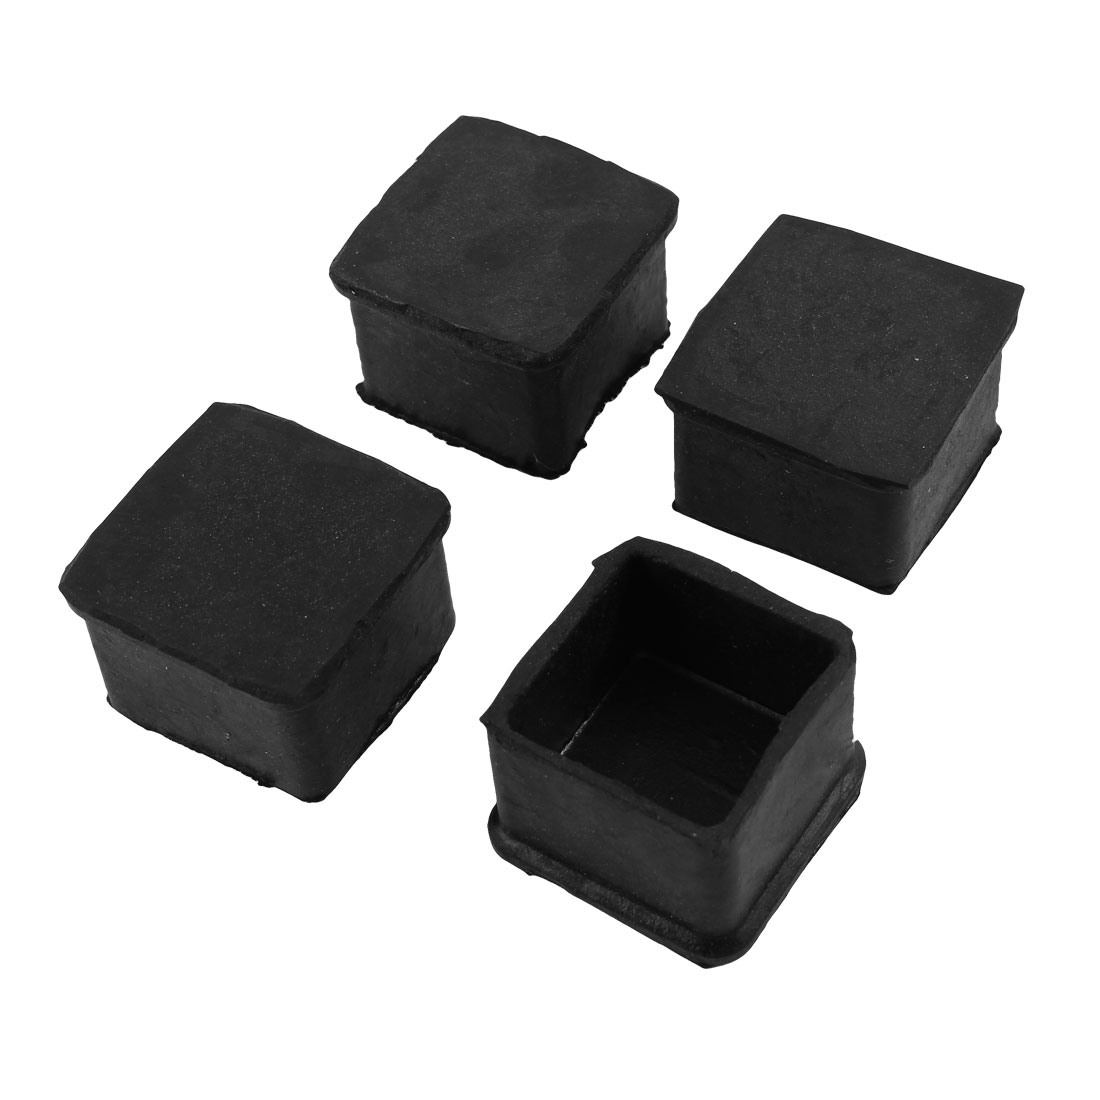 Rubber Chair Cupboard Foot Castor Cups Cover Floor Protector 4 Pcs